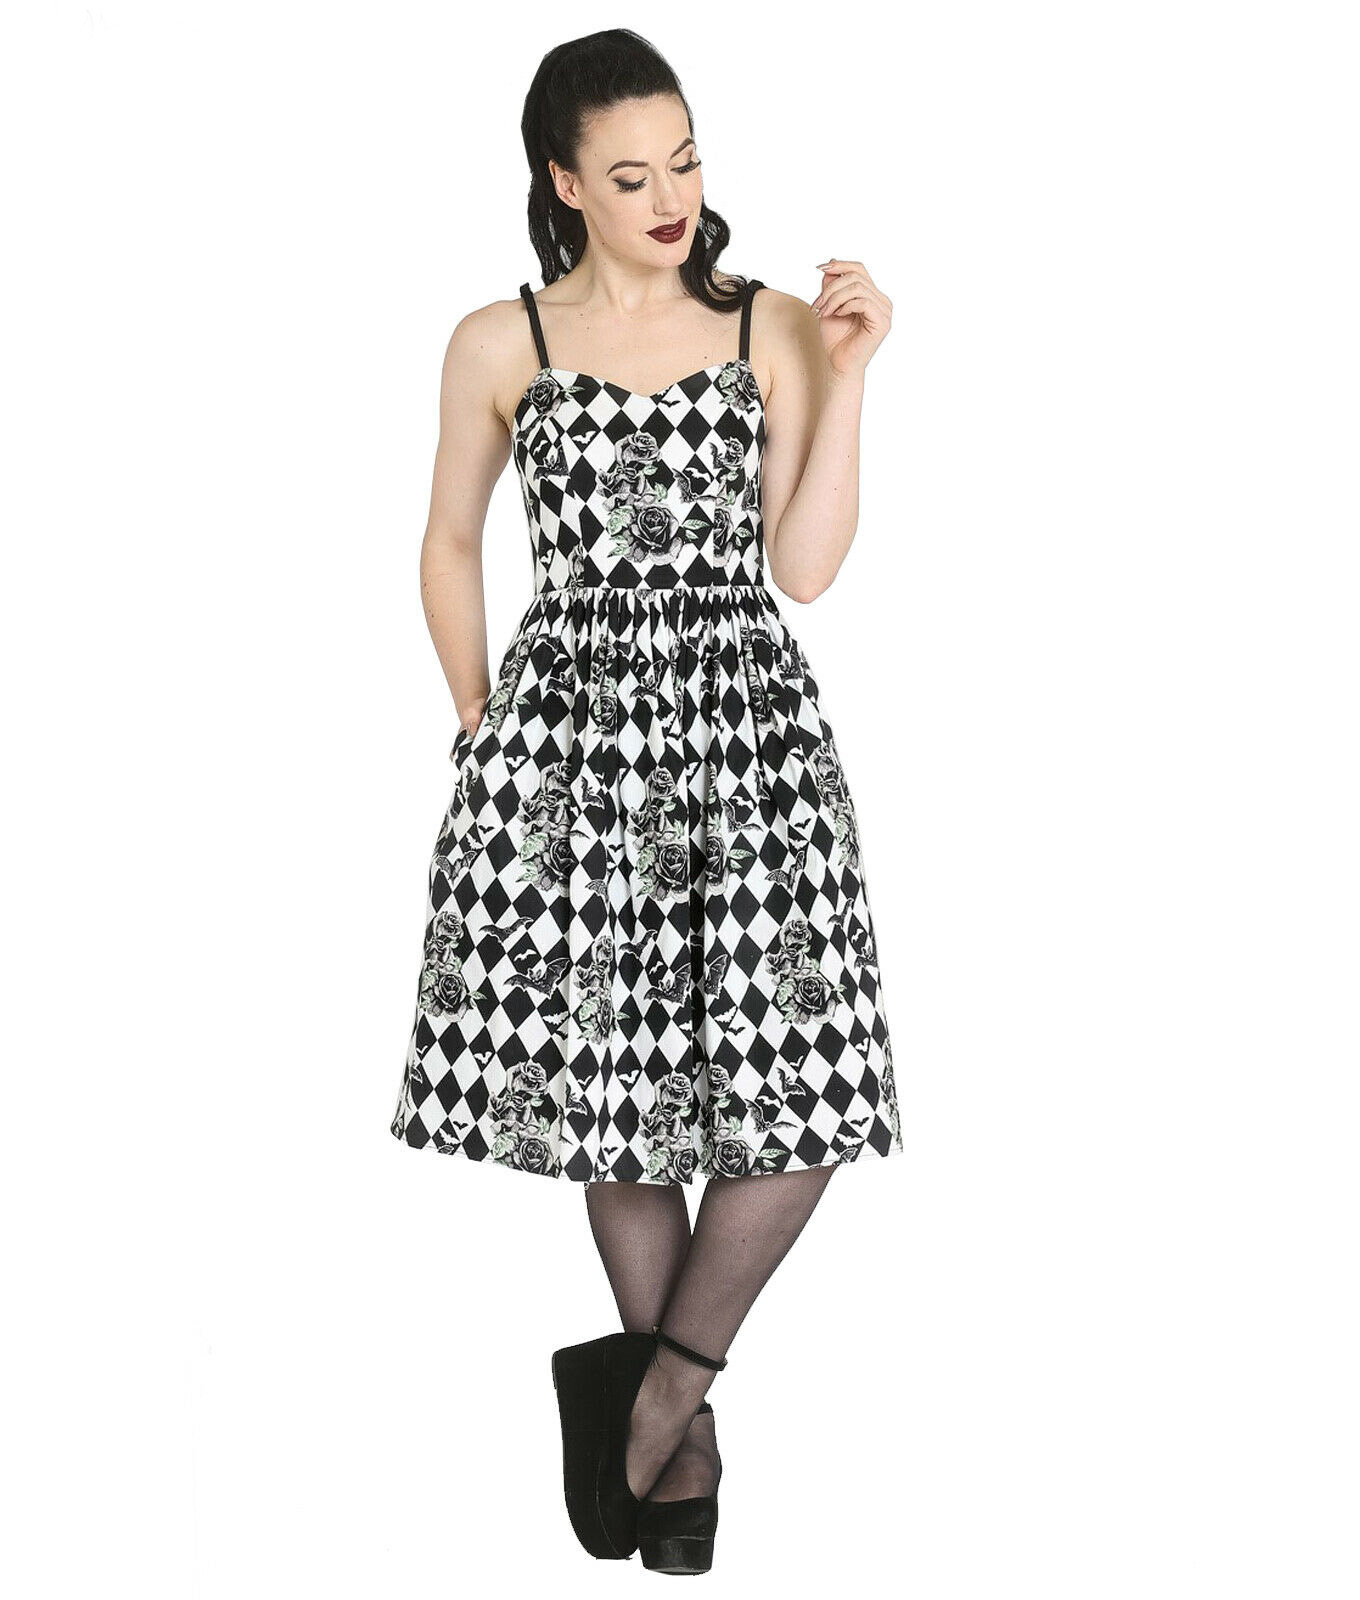 Hell-Bunny-Black-Harlequin-Pinup-50s-Gothic-Dress-HAUNTLEY-Bats-Roses-All-Sizes thumbnail 7